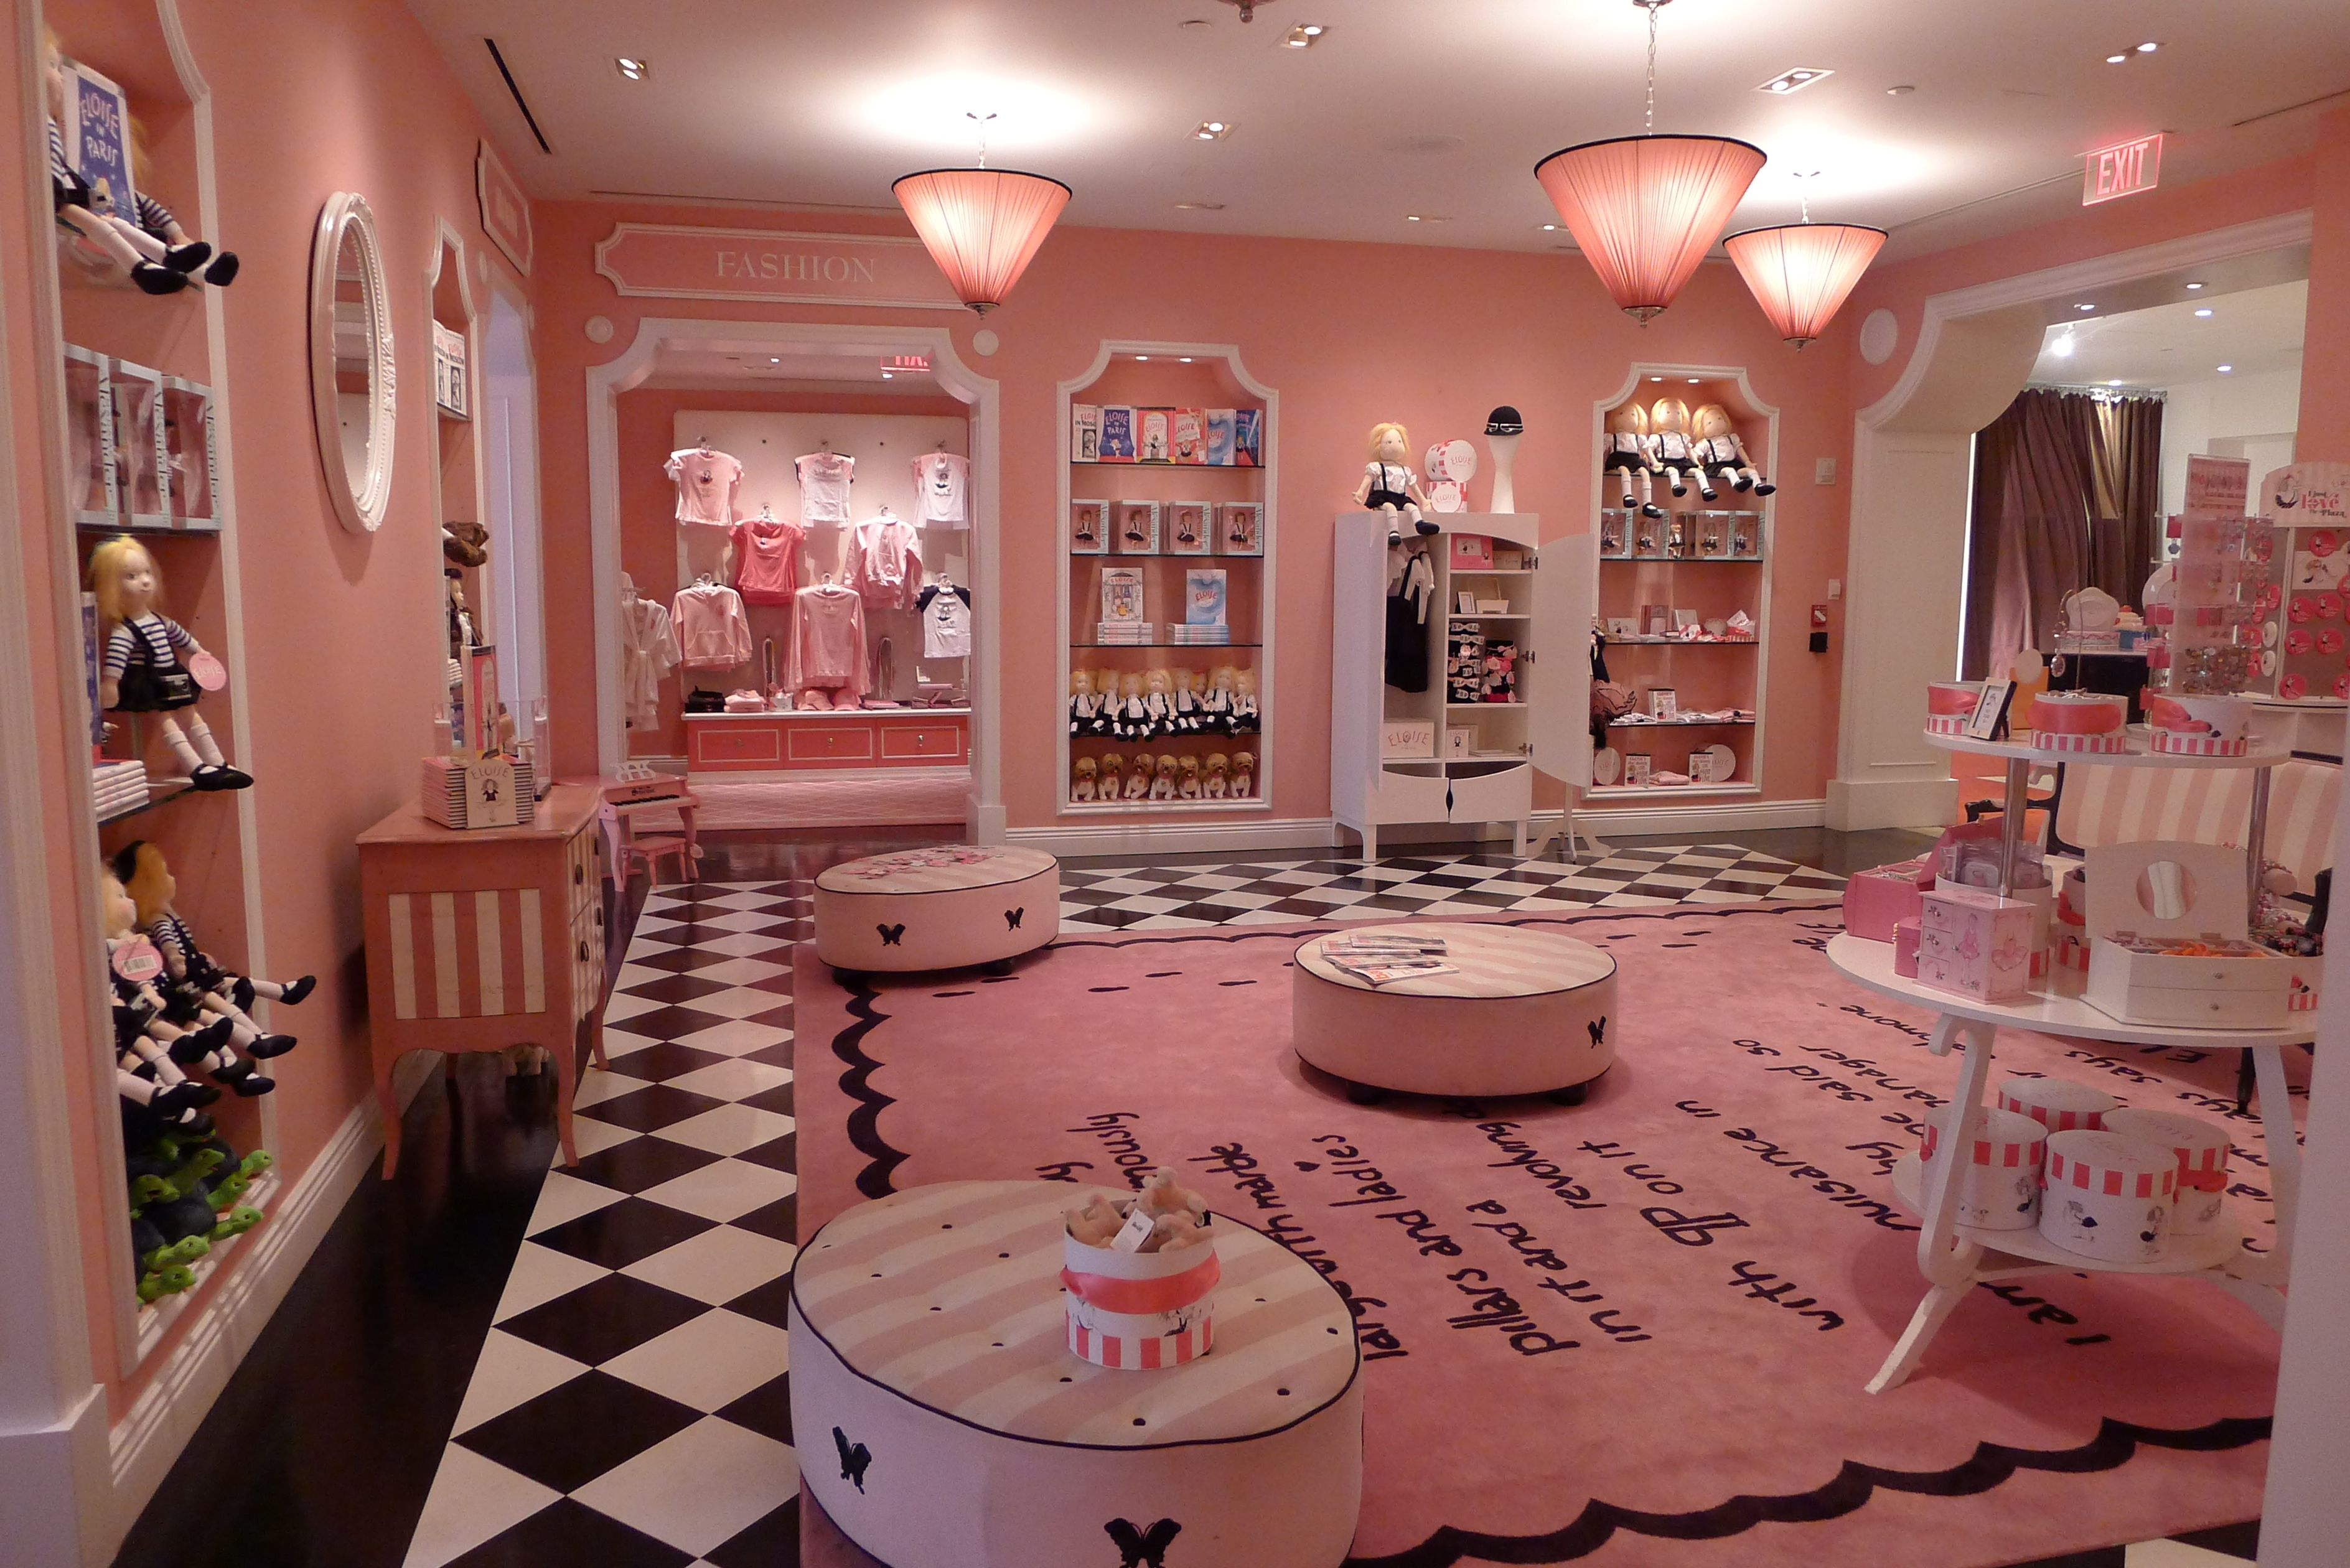 The Eloise Shop at the Plaza